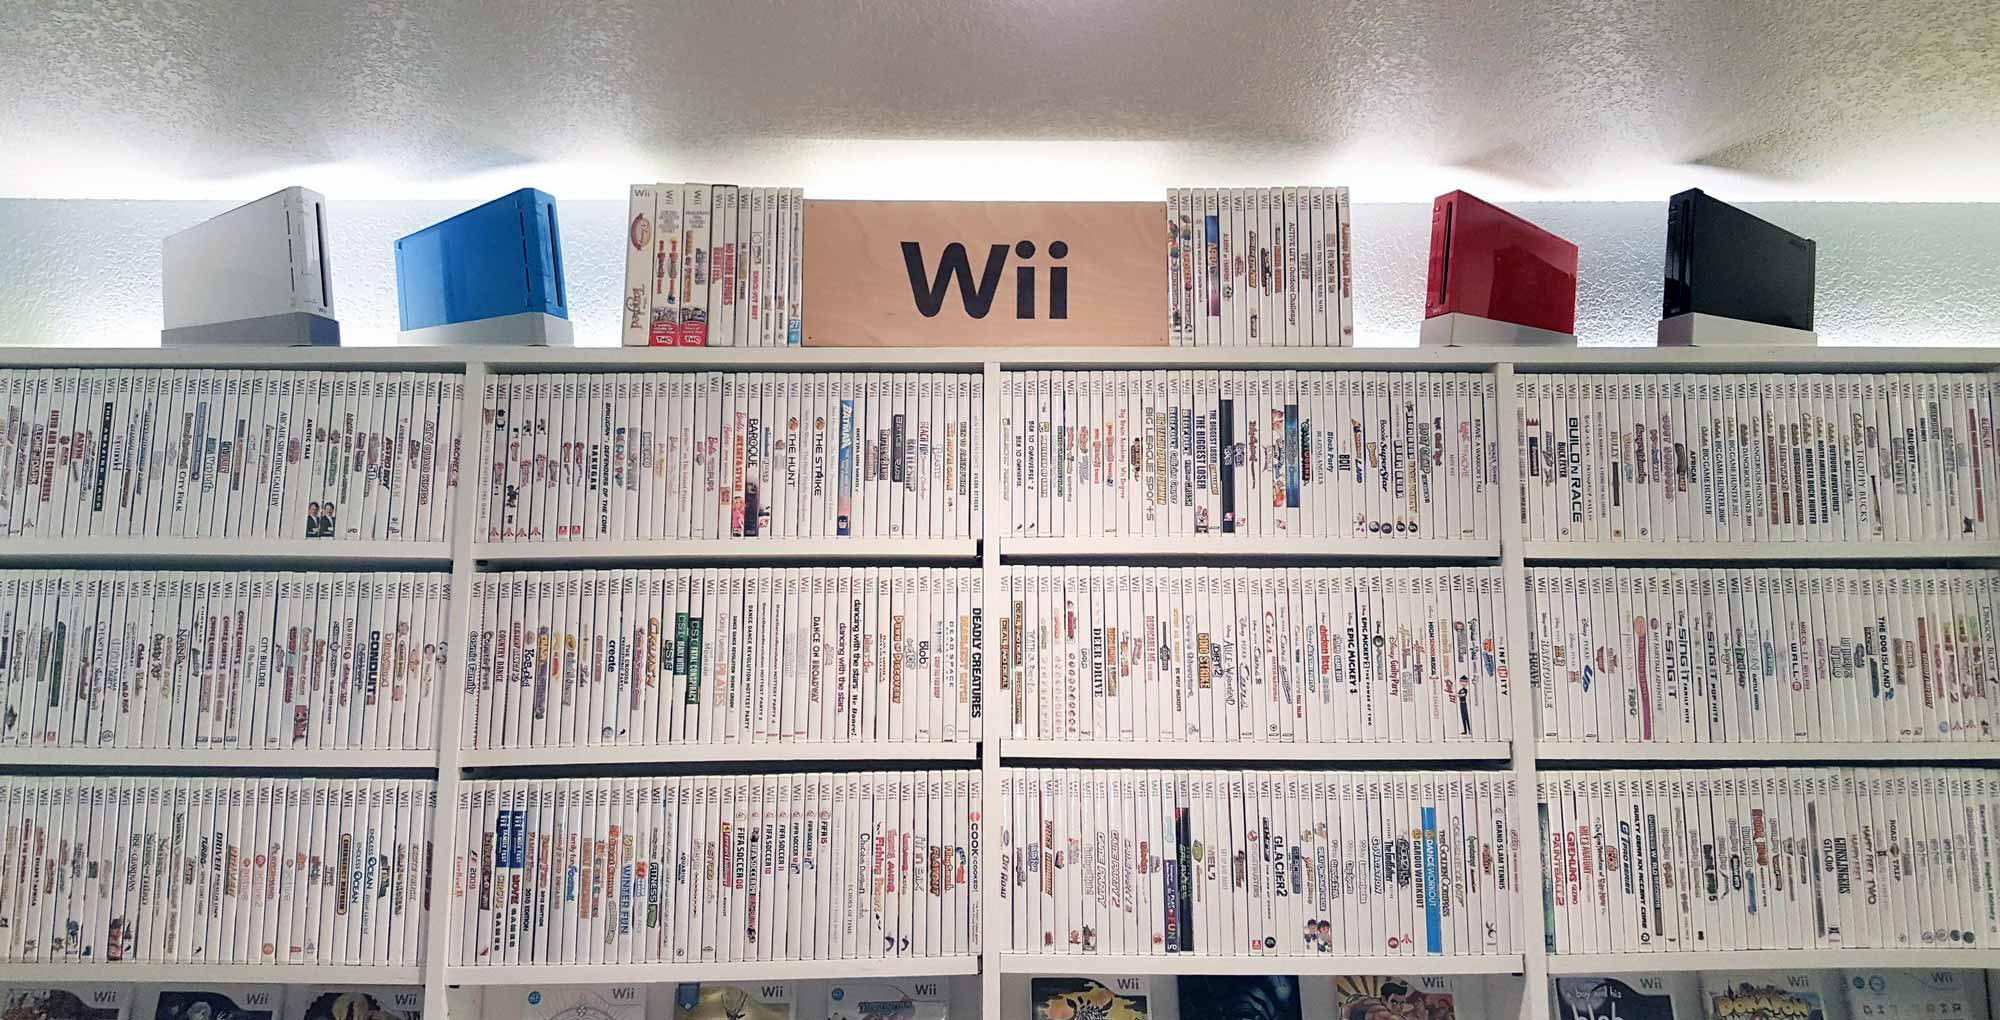 Wii game collection - Canadian mobile stories